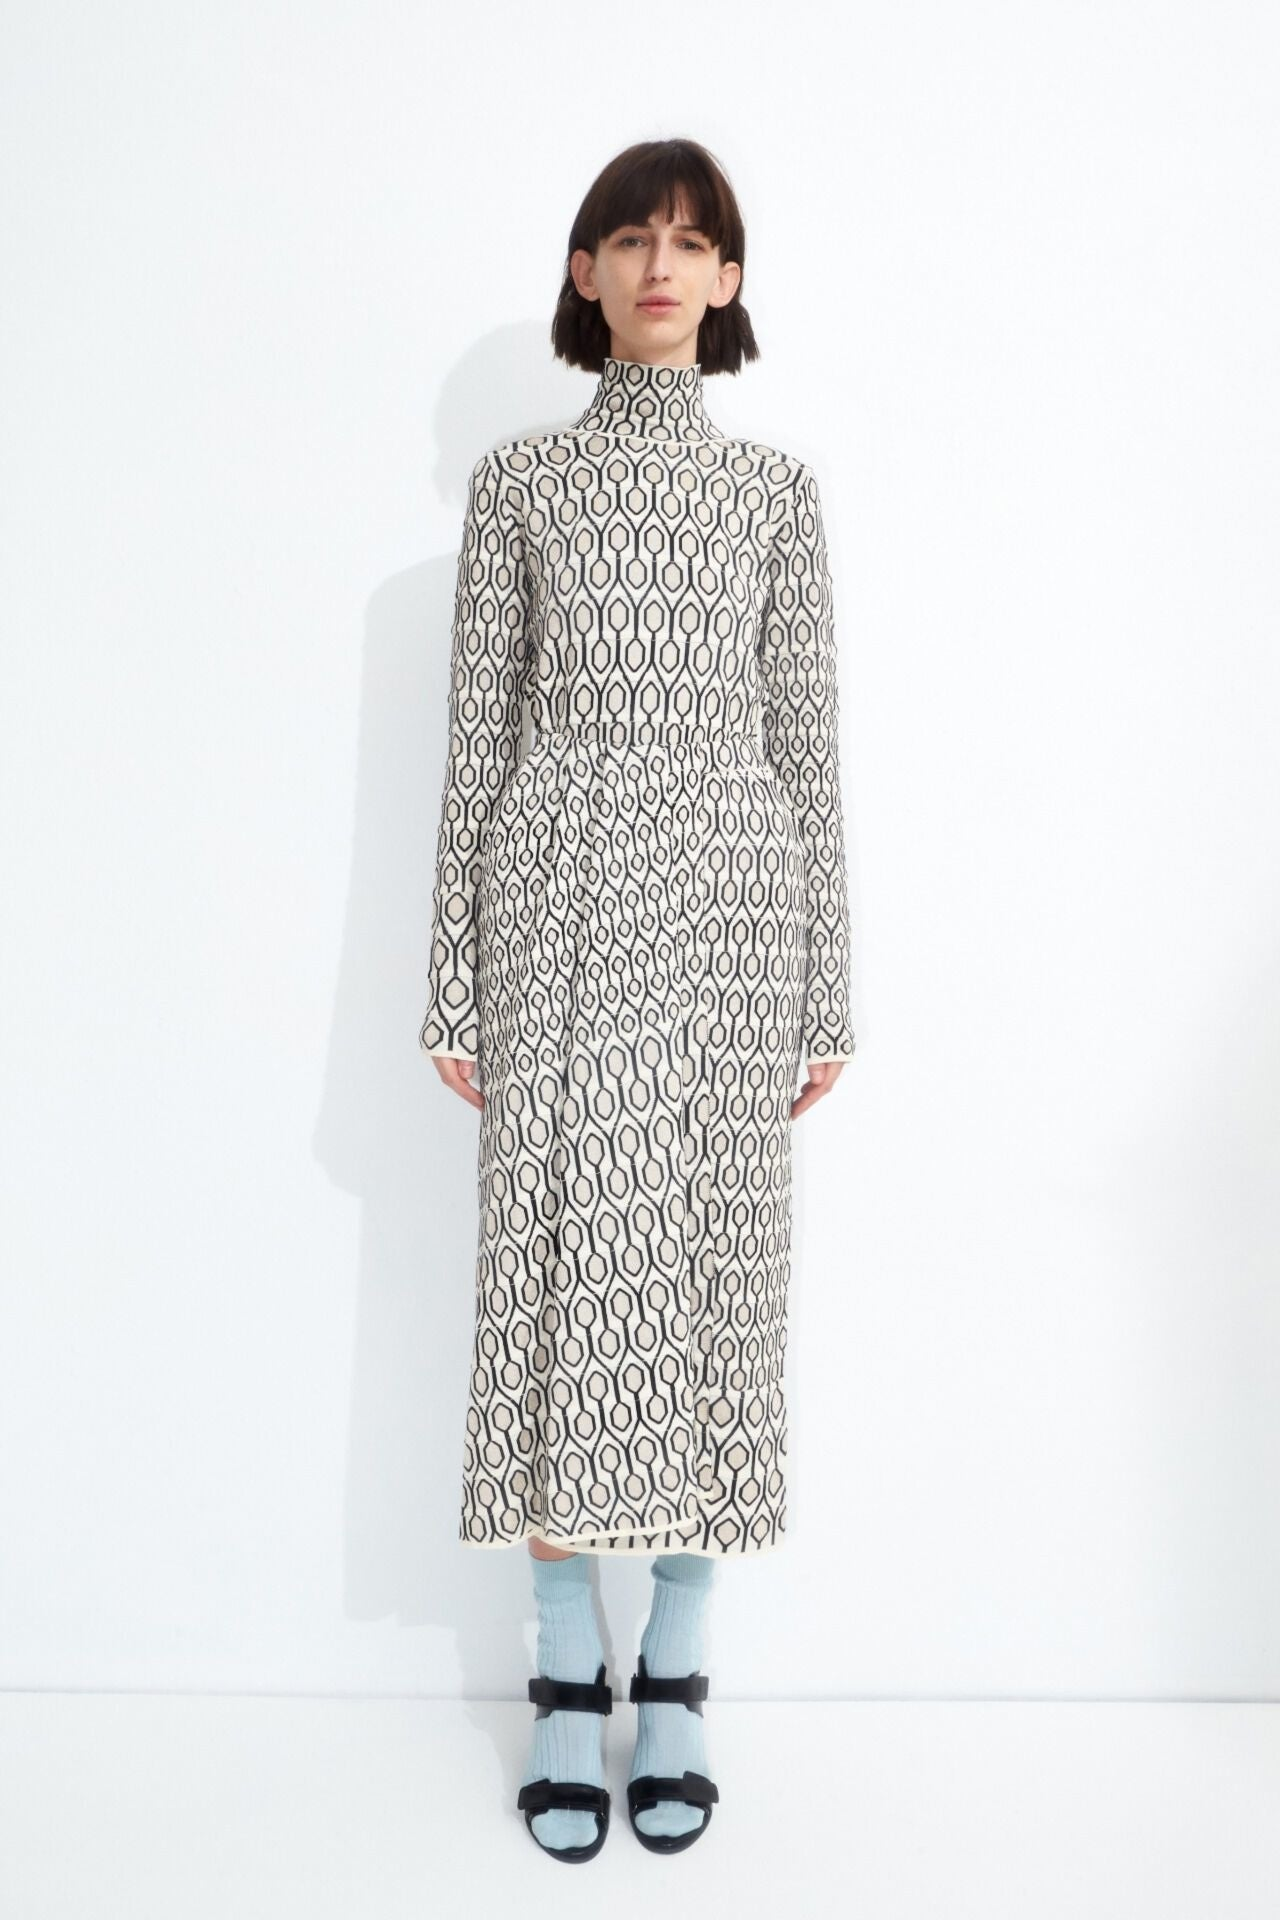 KAHA JACQUARD KNIT SKIRT